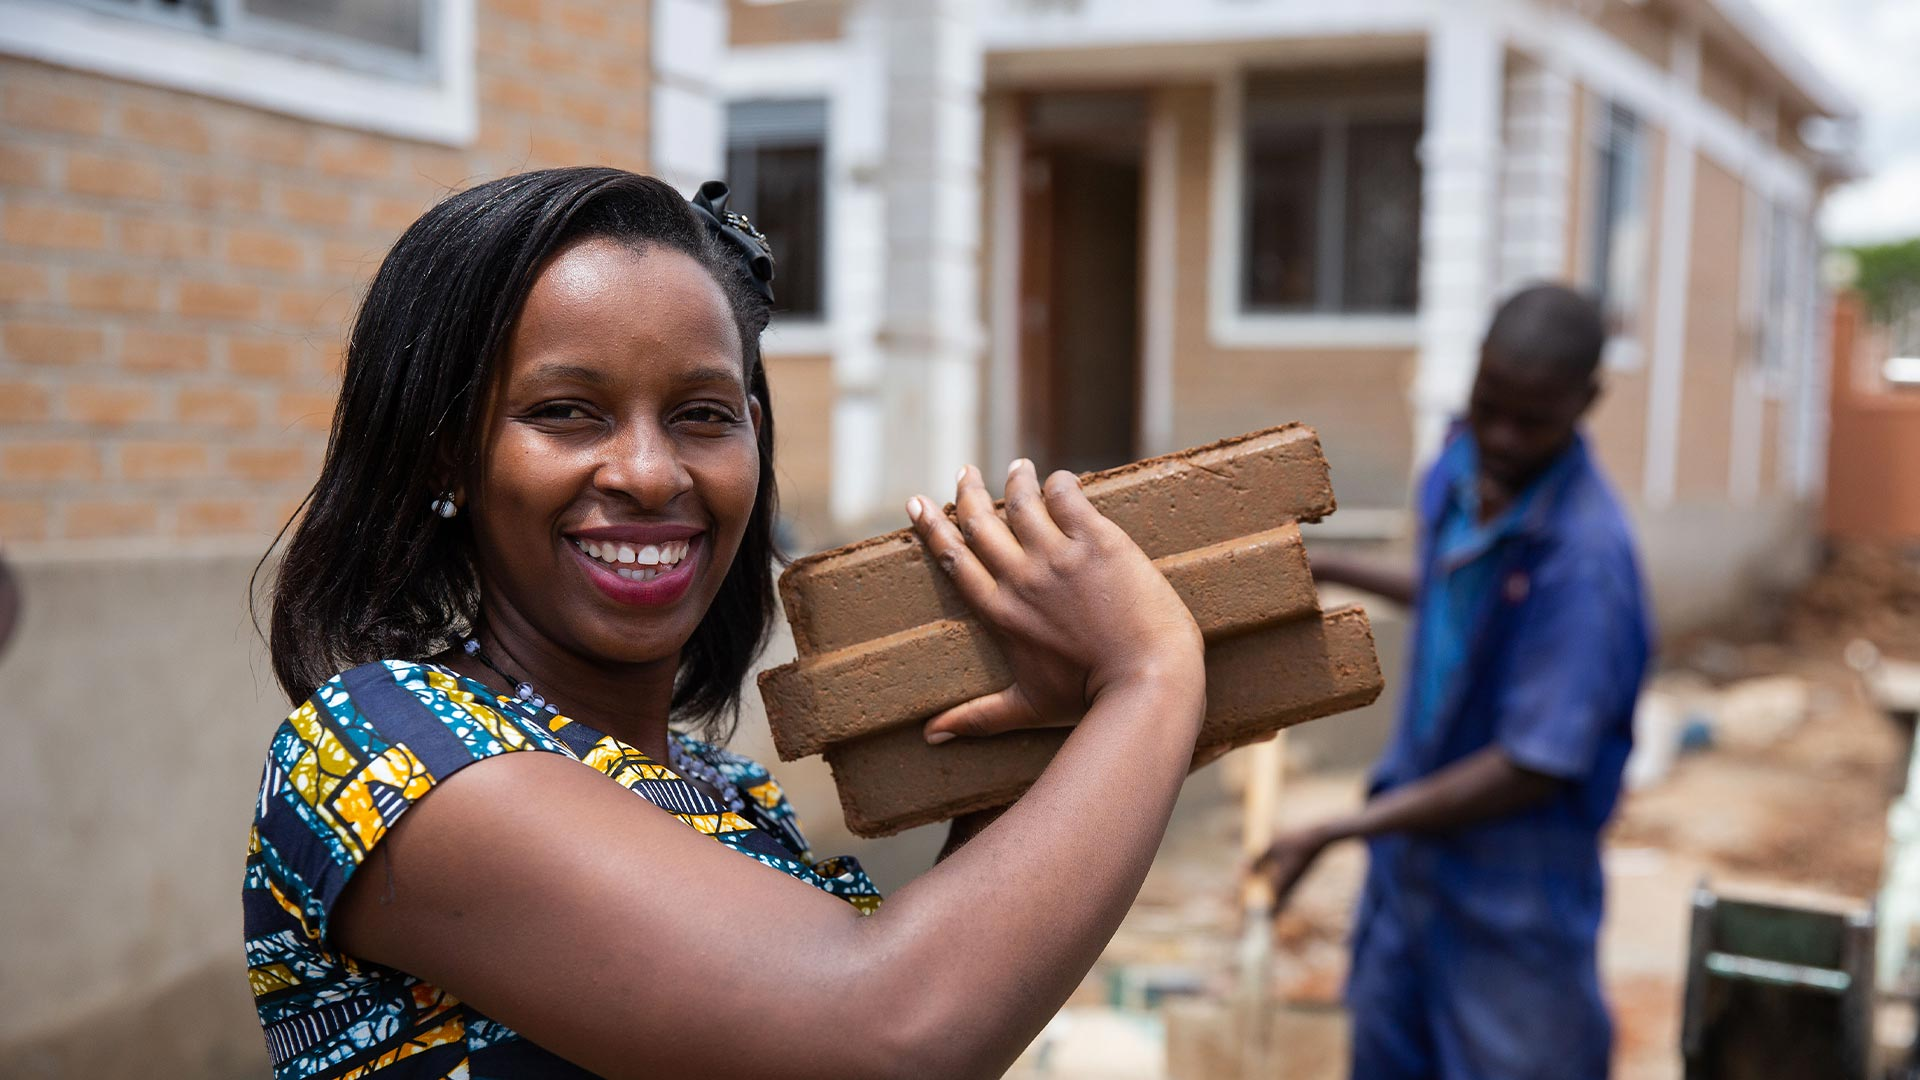 Woman carrying a brick smiling